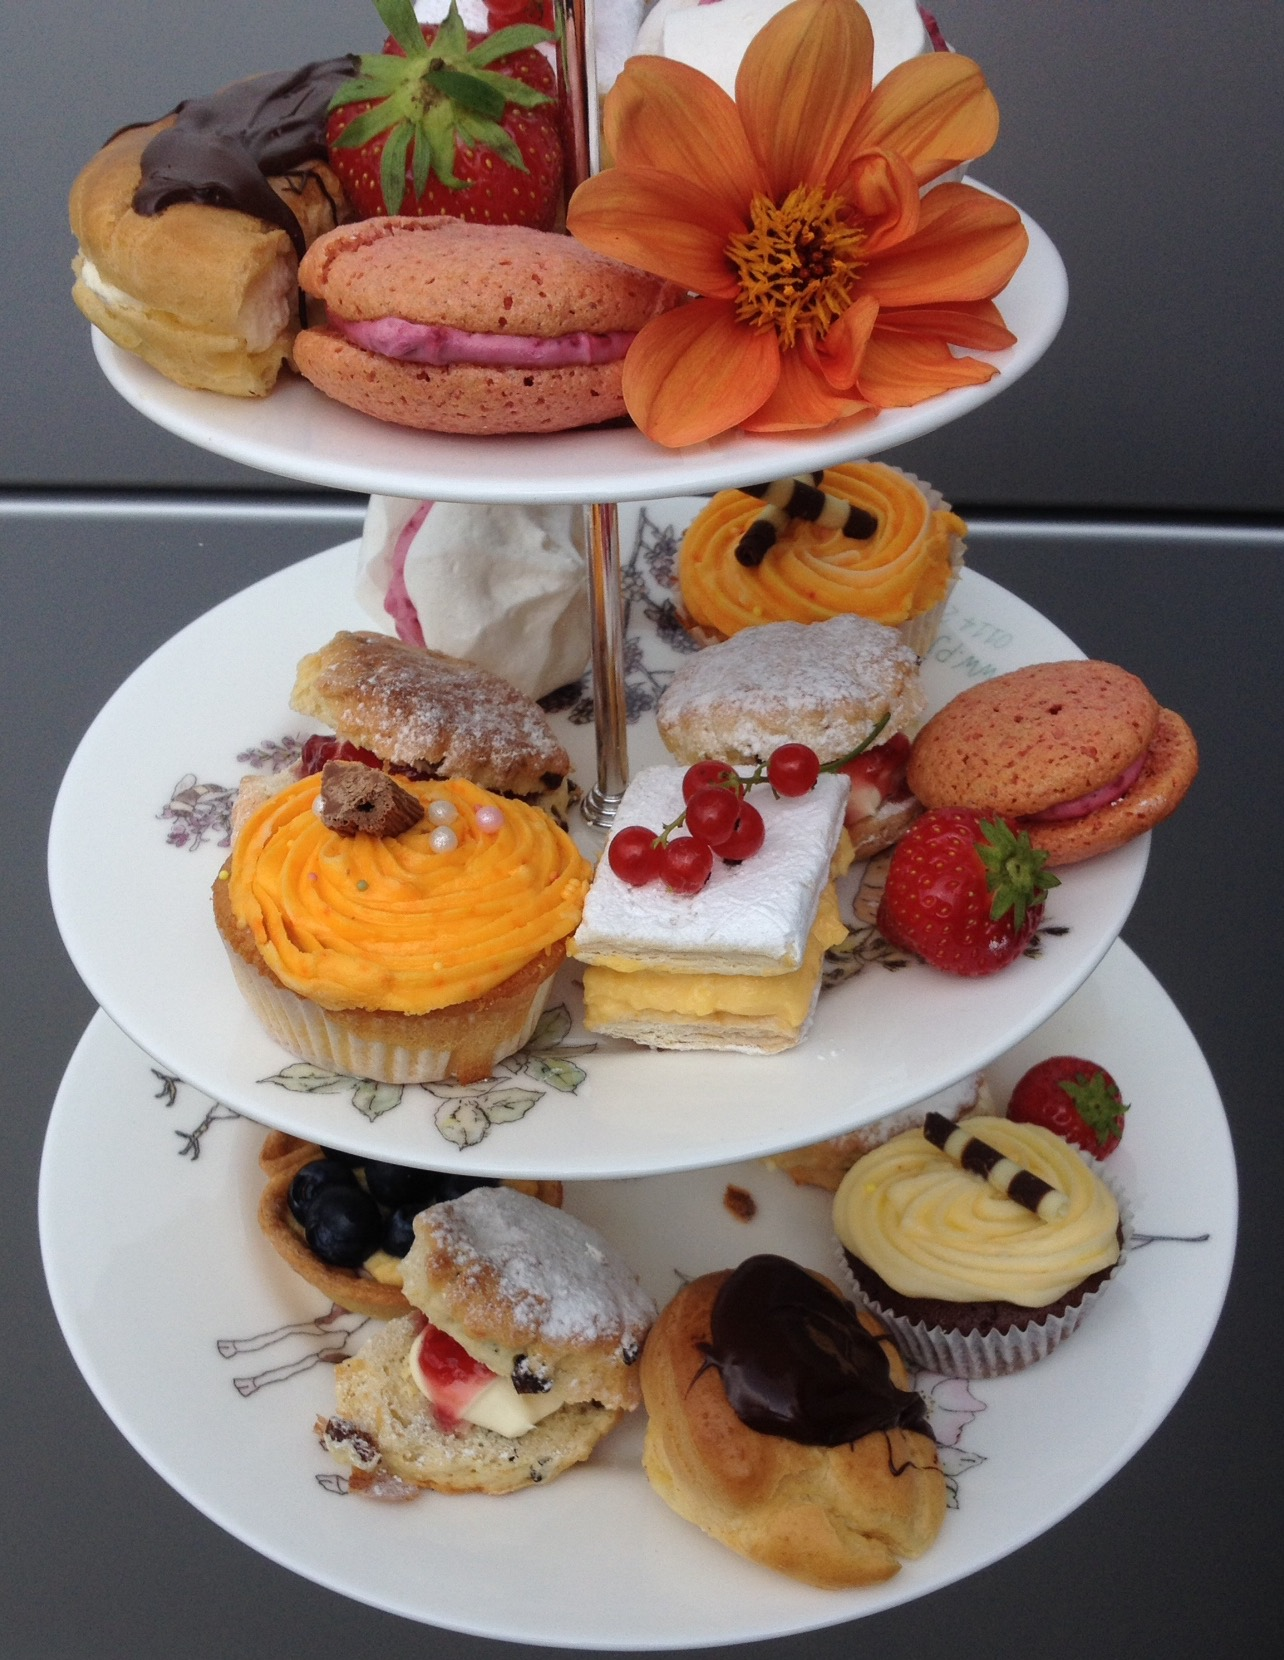 Afternoon tea with handmade cakes